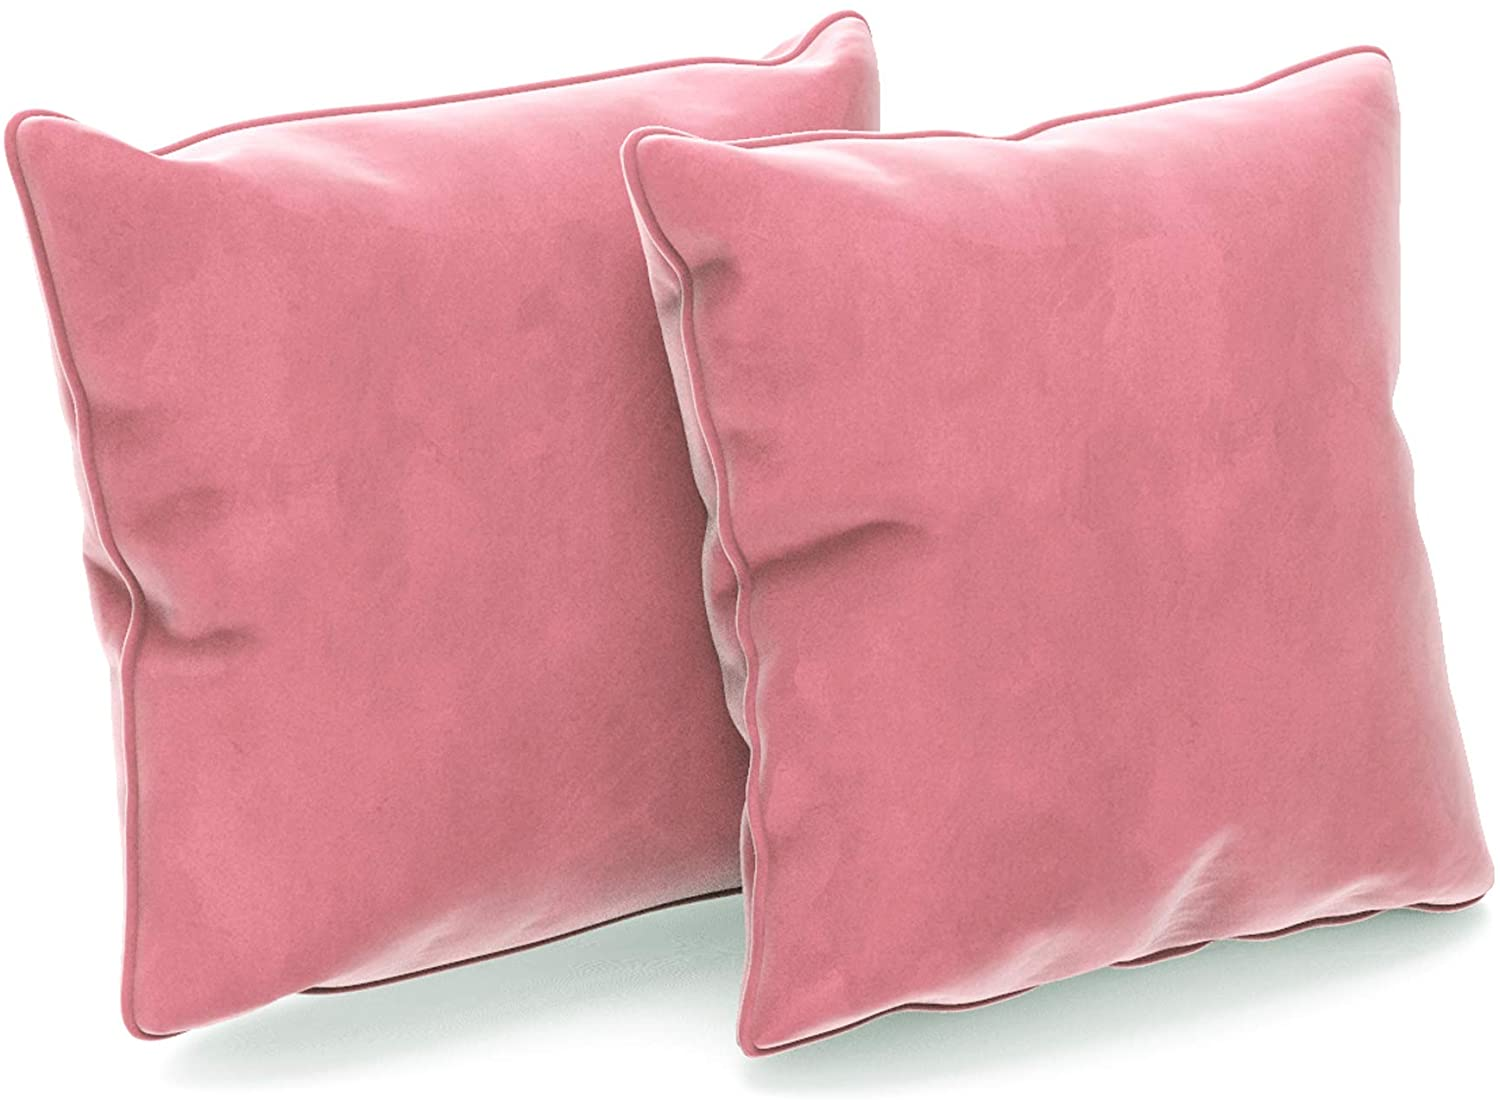 Aoubate Set of 2 Pillow Covers, Made of Velvet and Invisible Zipper,Original Fabric Edging Suitable for Home Decoration Sofa Bedroom and car,Square 20